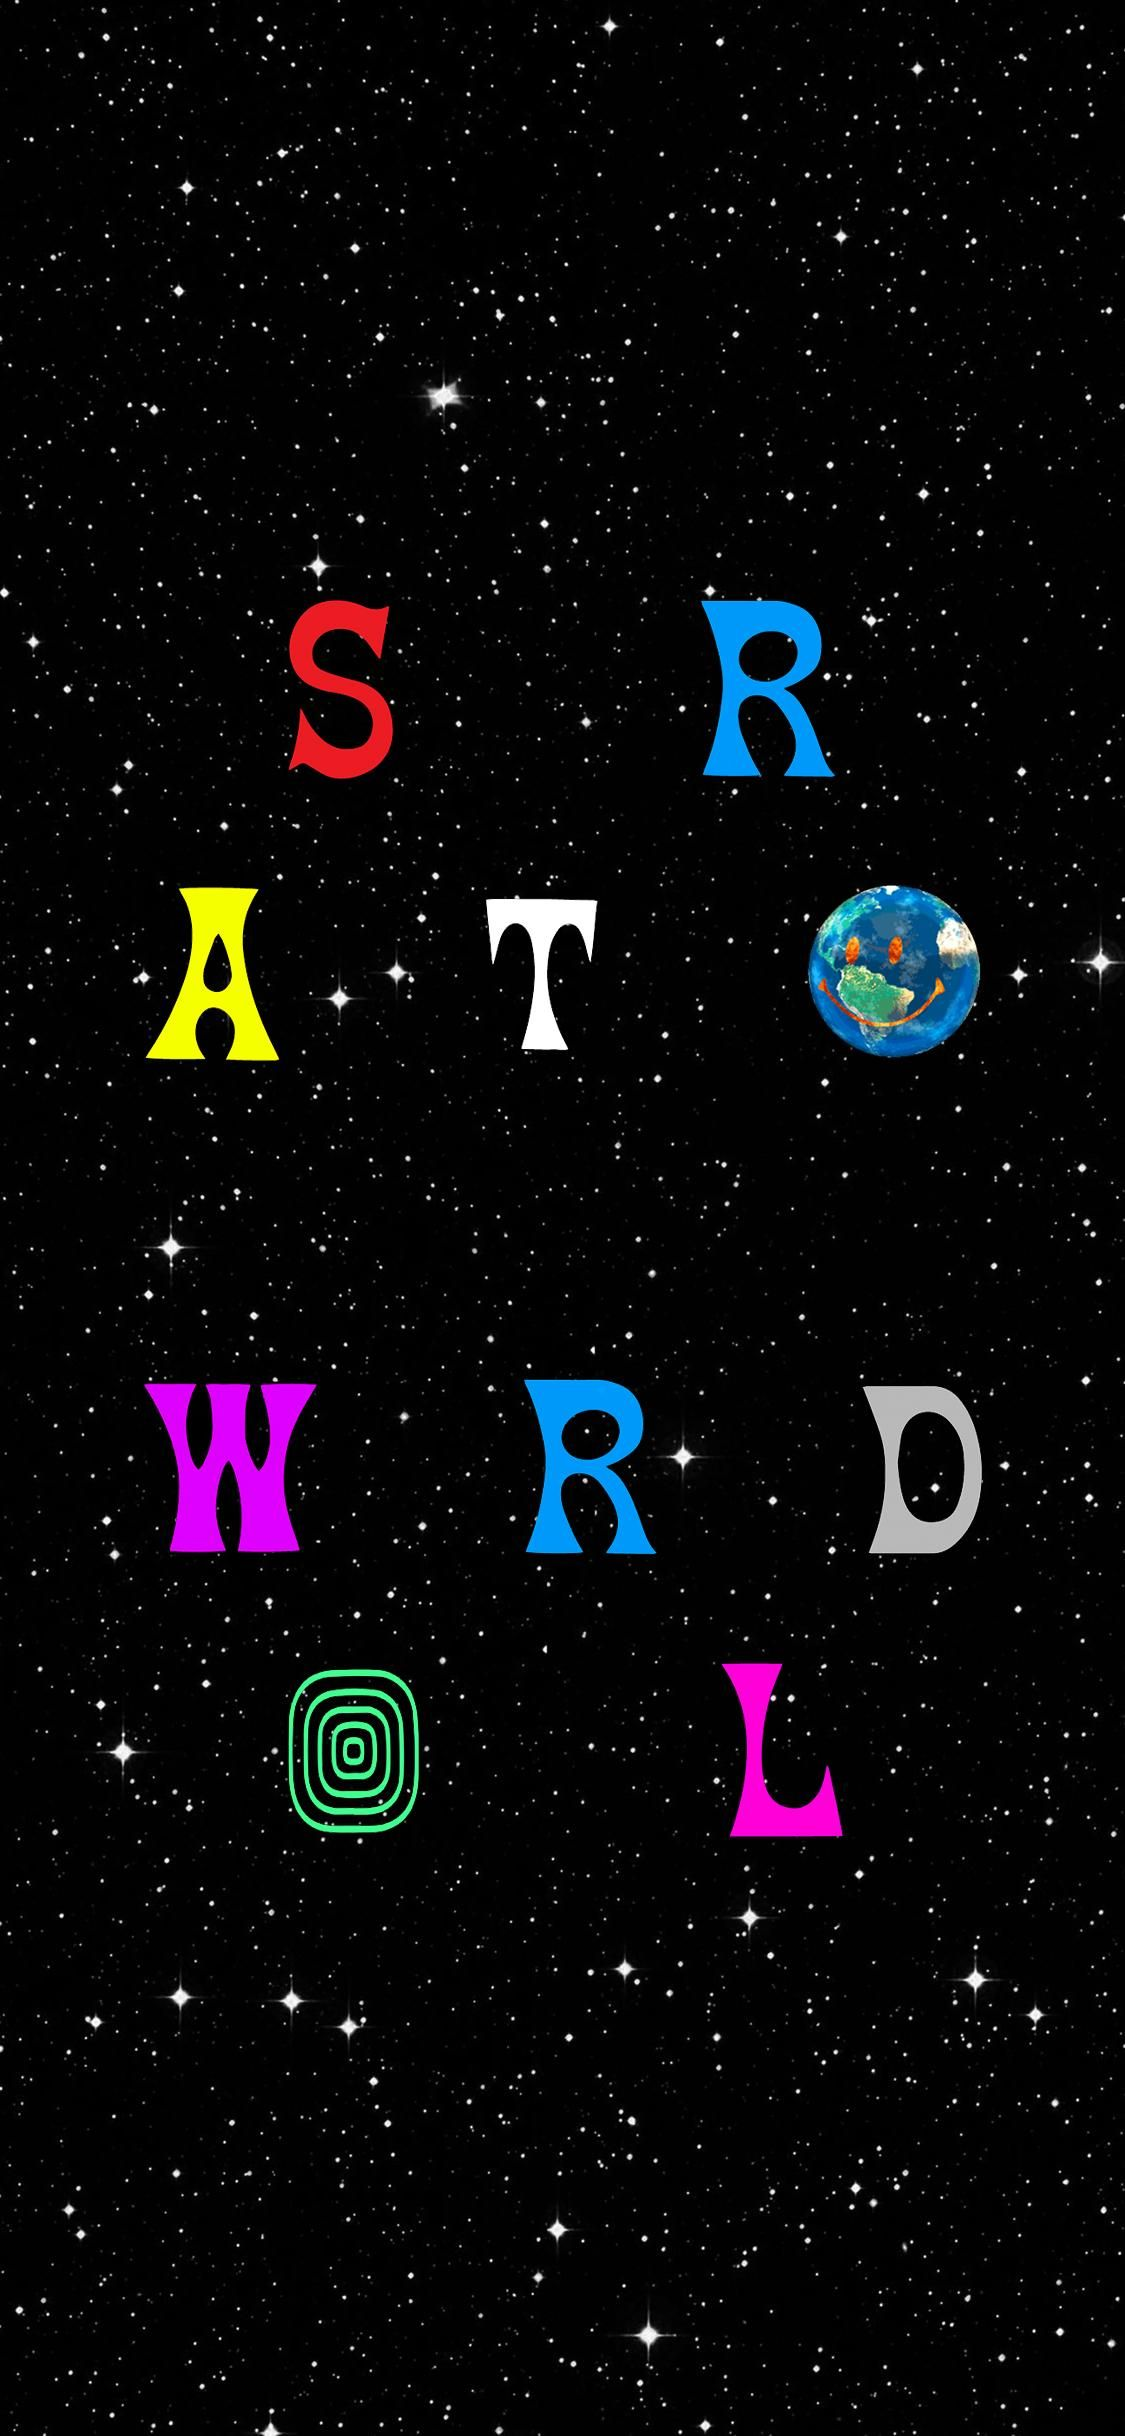 Astroworld Travis Scott Wallpapers Iphone Wallpaper Music Hype Wallpaper